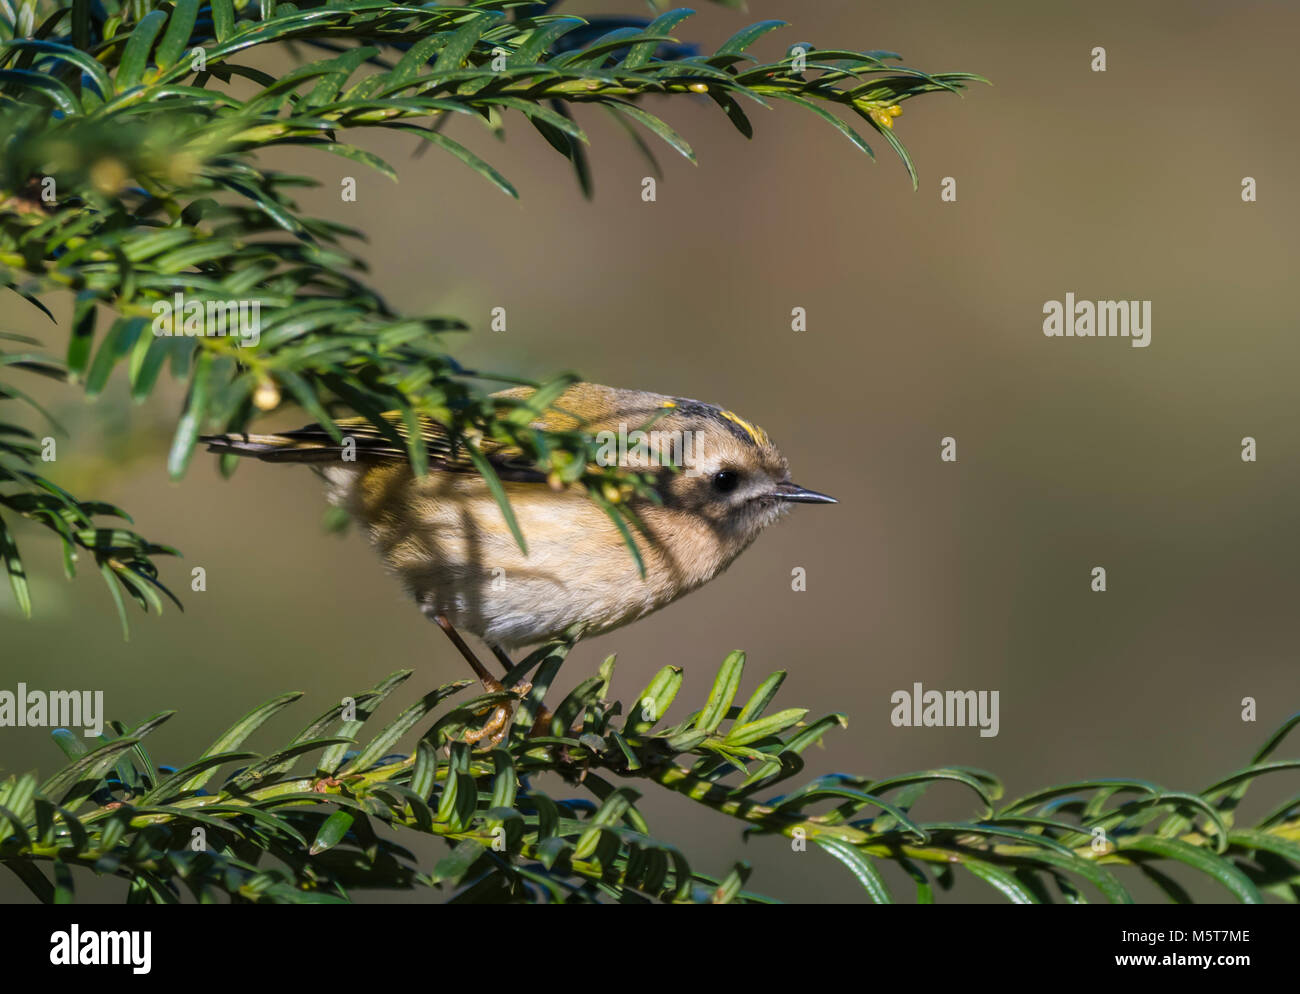 Adult Goldcrest bird (Regulus regulus) perched in a twig on a cold day in Winter in West Sussex, England, UK. - Stock Image